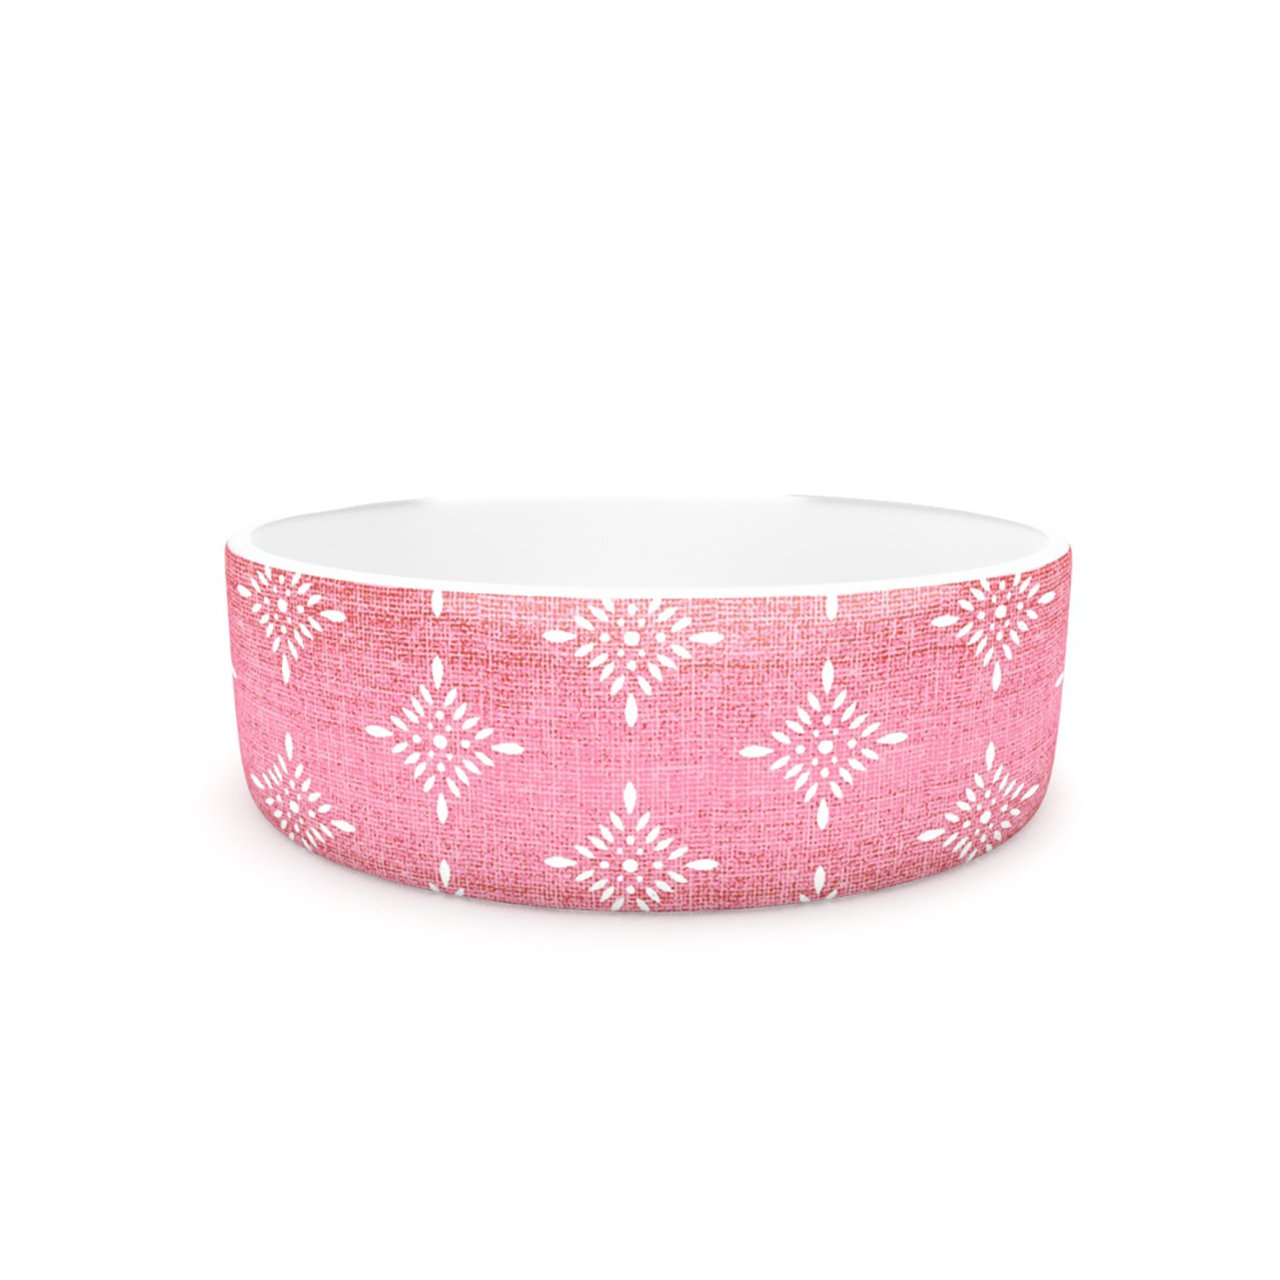 Kess InHouse Suzie Tremel Medallion Red Ombre  Pet Bowl, 7-Inch, Pink